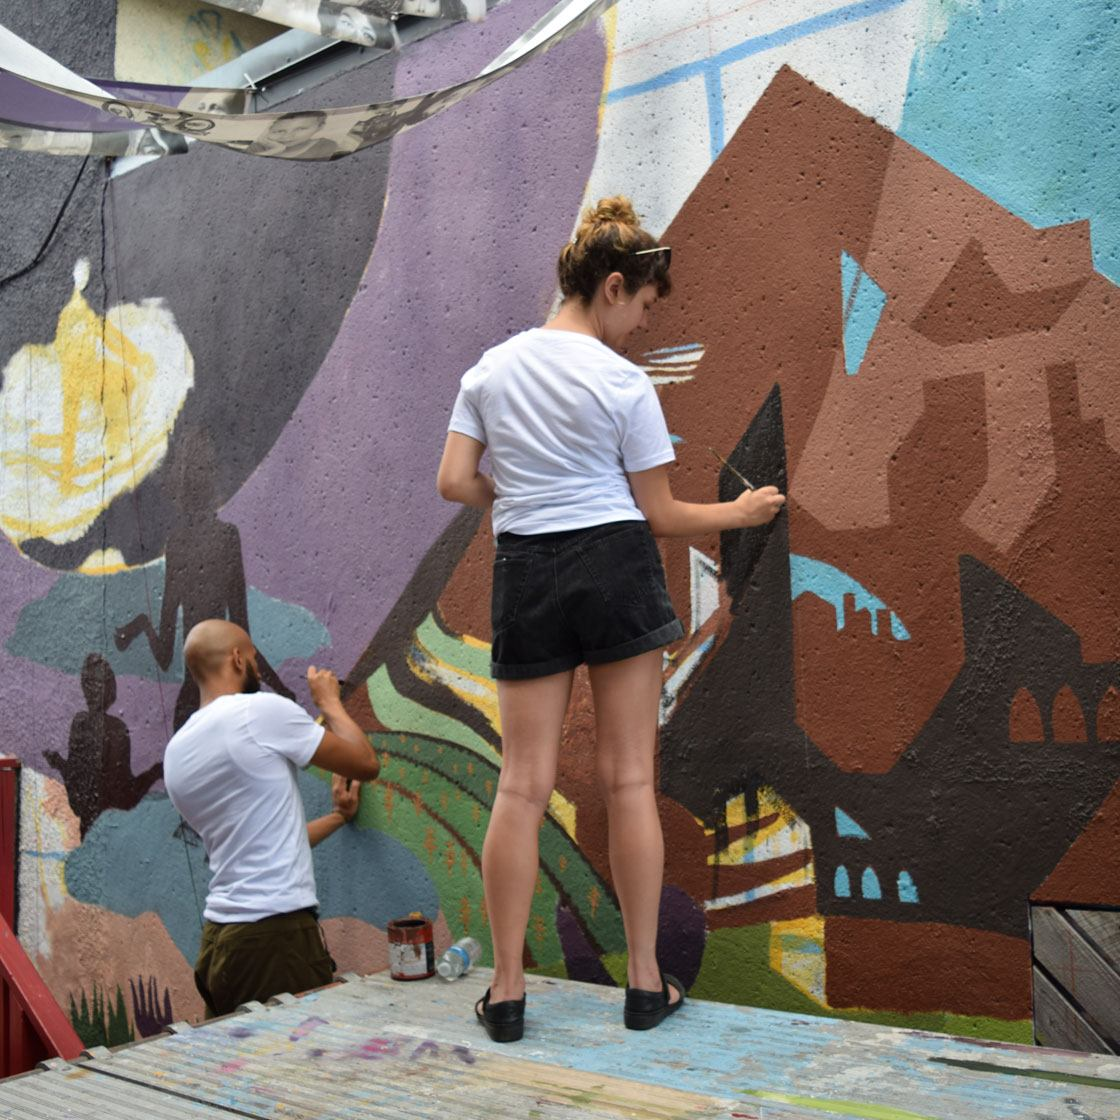 A young person painting a large-scale outdoor mural